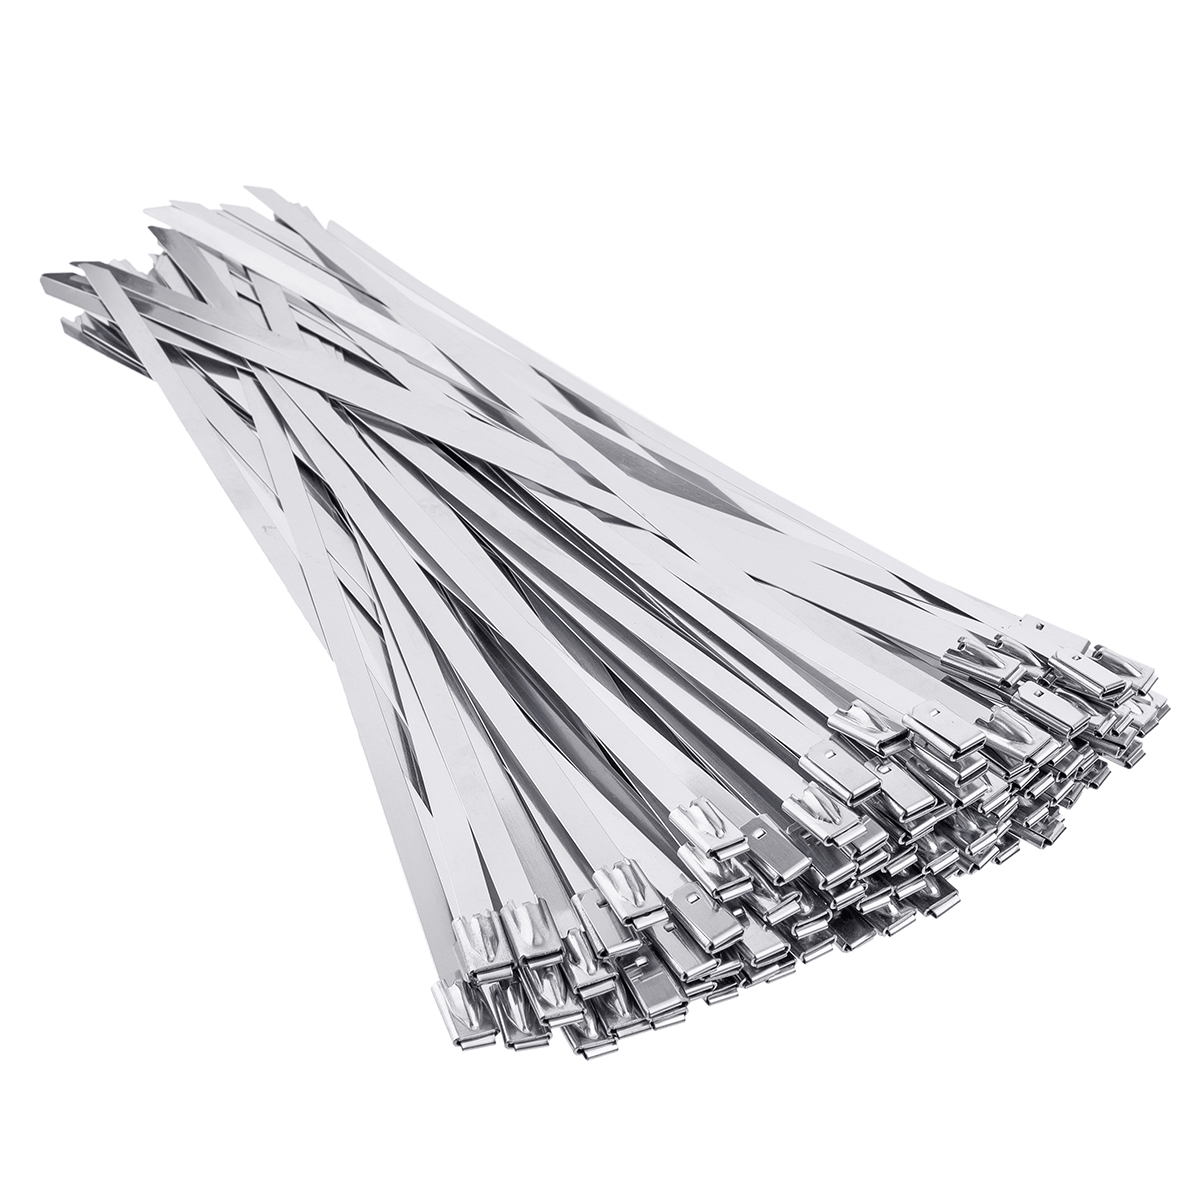 100Pcs 4.6x200mm Stainless Steel Zip Tie Exhaust Wrap Coated Locking Cable Ties